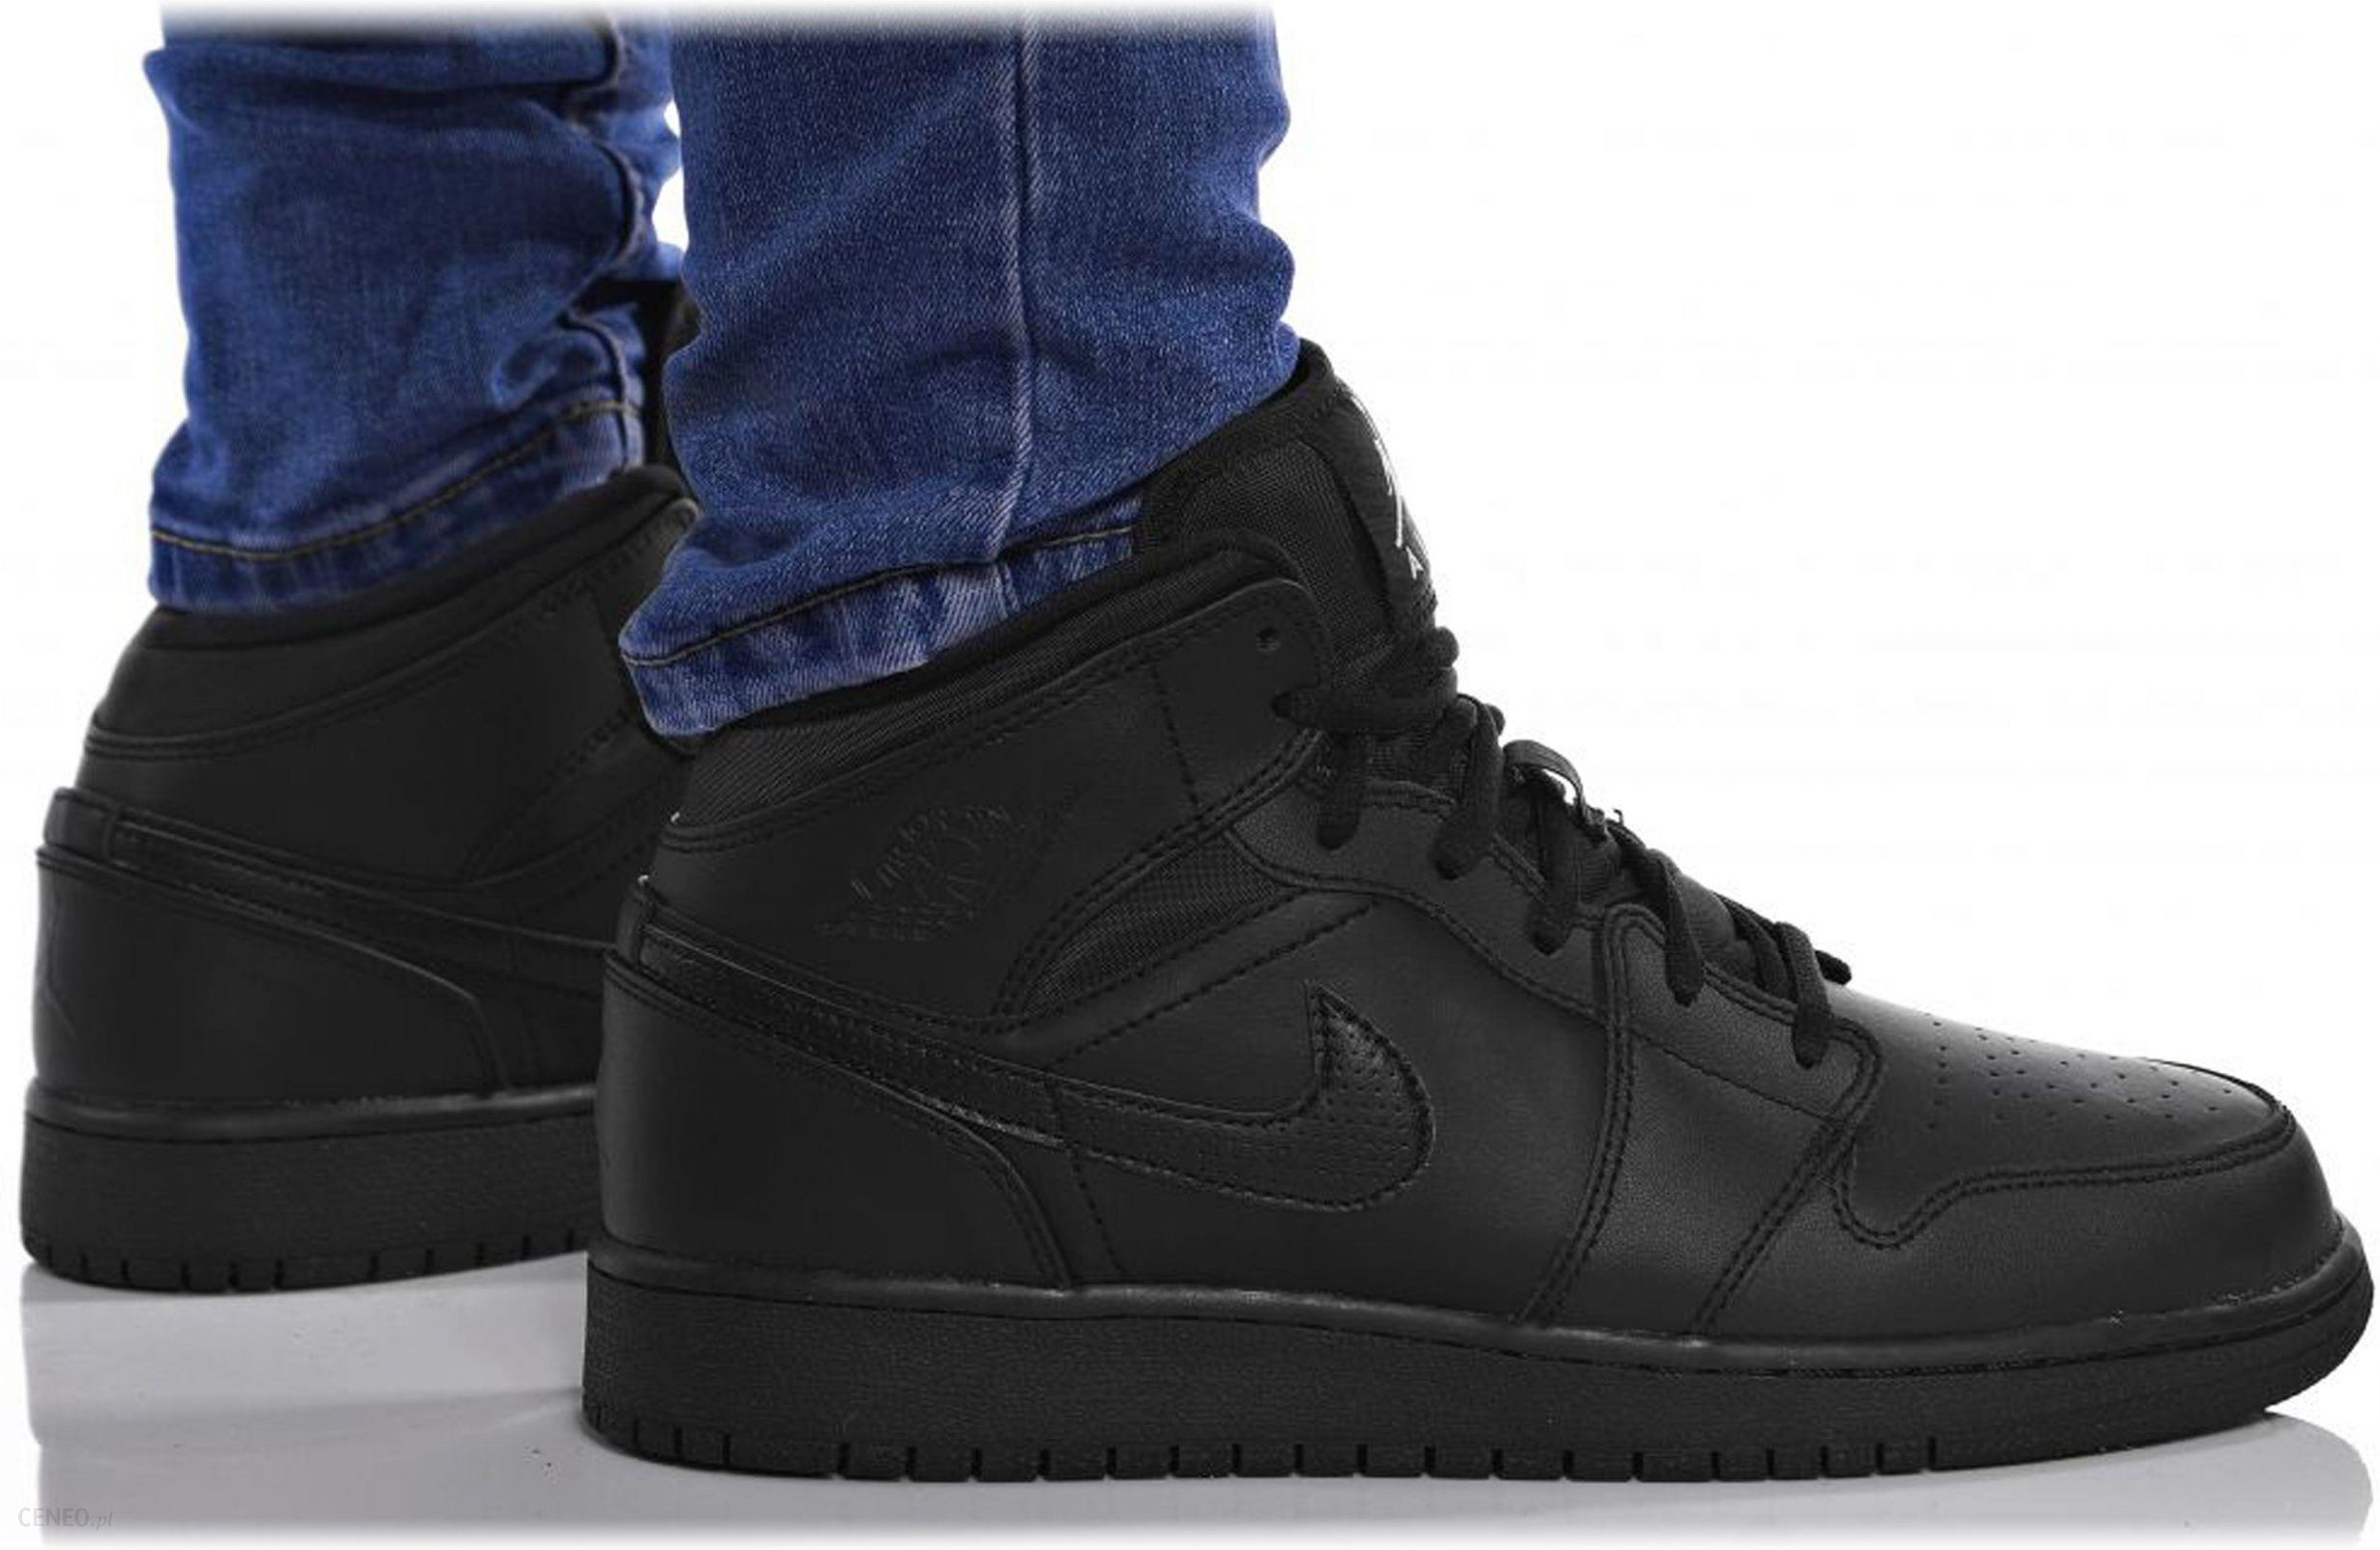 finest selection a8f97 11adc Buty Nike Air Jordan 1 MID Bg Damskie 554725-044 - Ceny i opinie ...